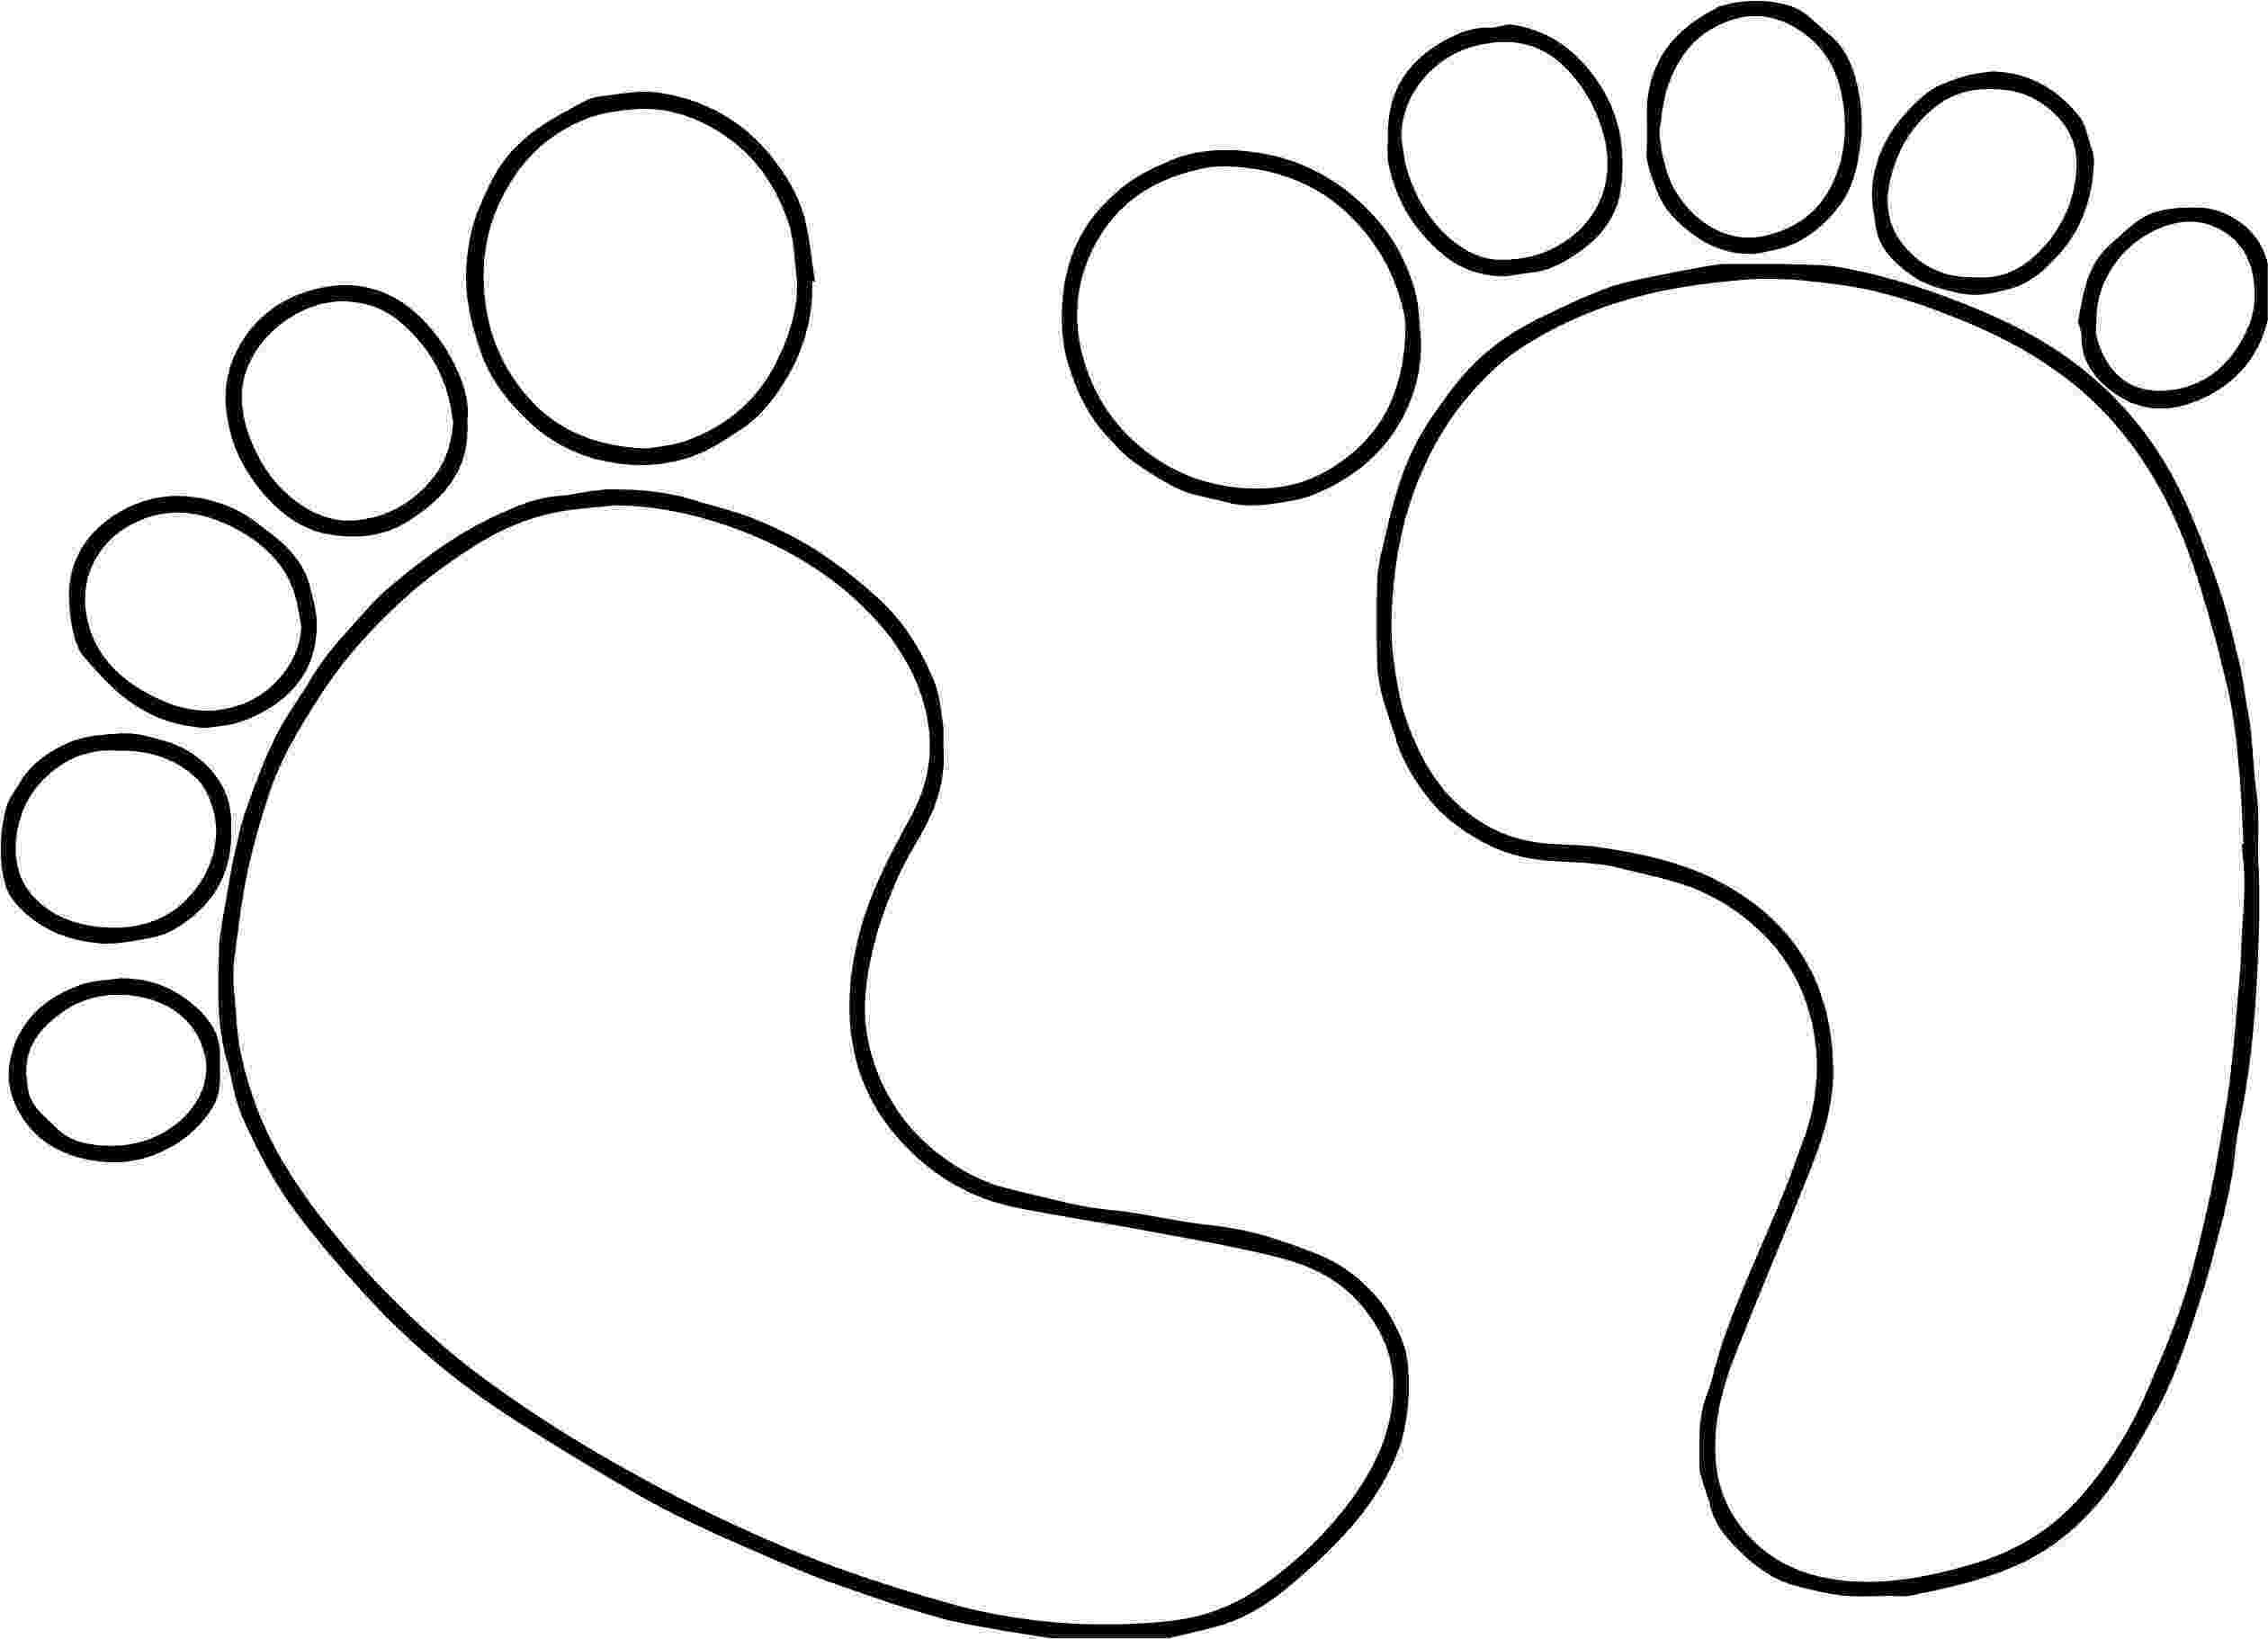 feet coloring sheet coloring page of feet for coloring for kids sketchuecom coloring sheet feet